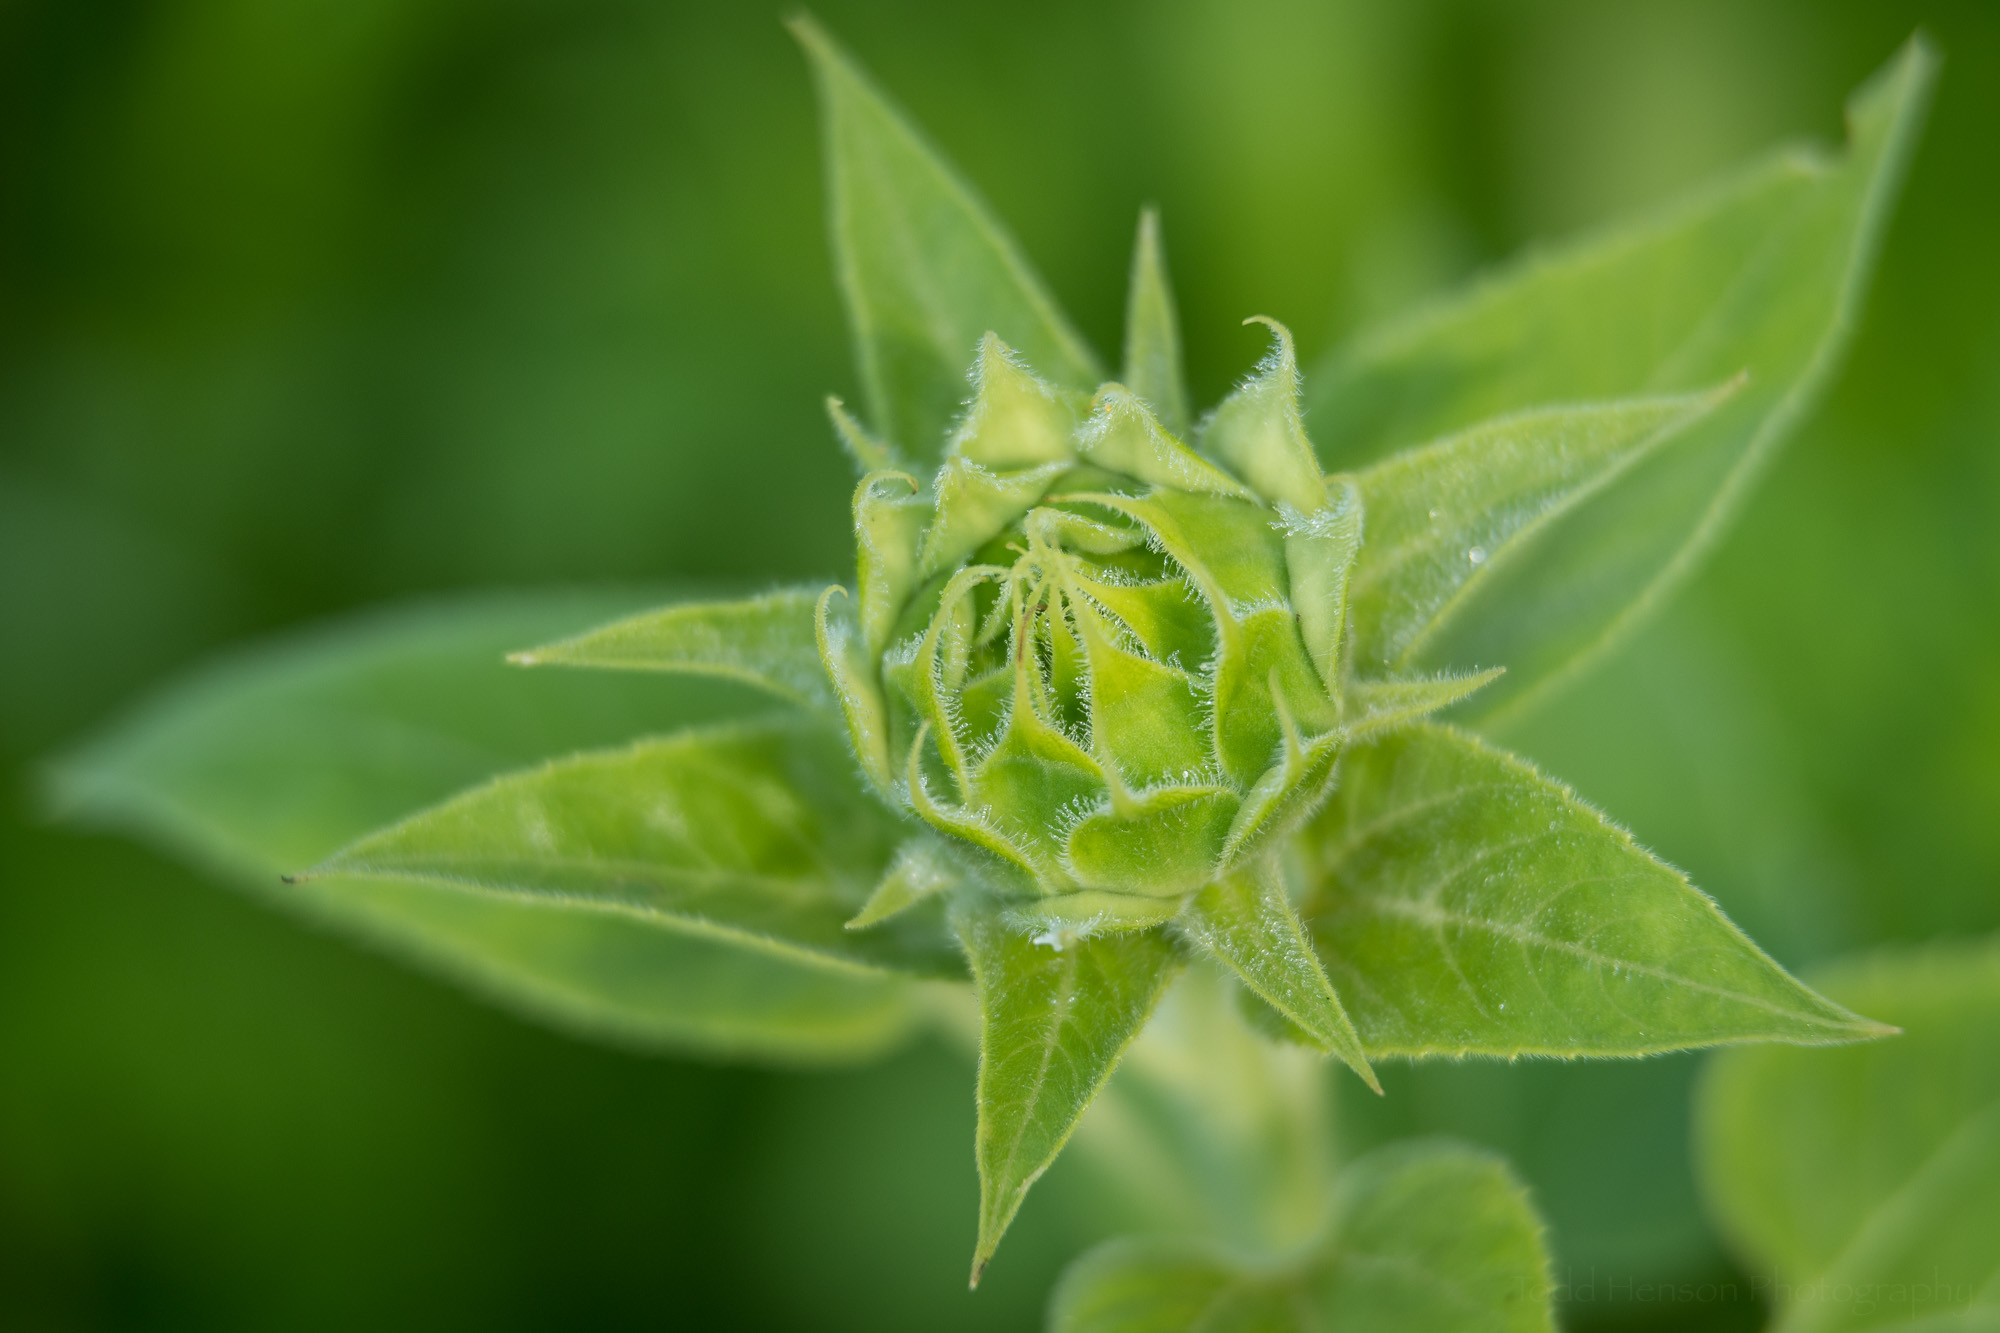 A young green sunflower bud.